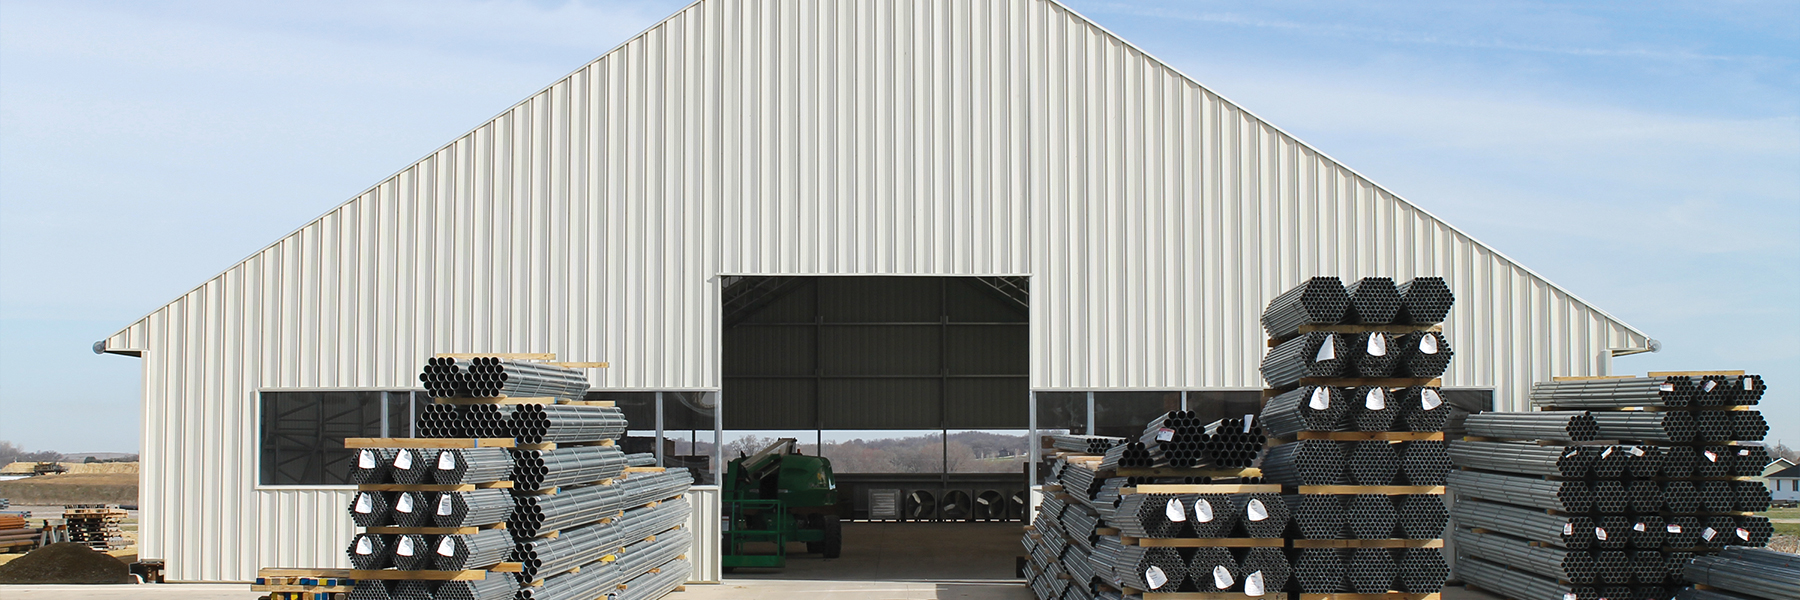 Metal Side wall for equipment storage